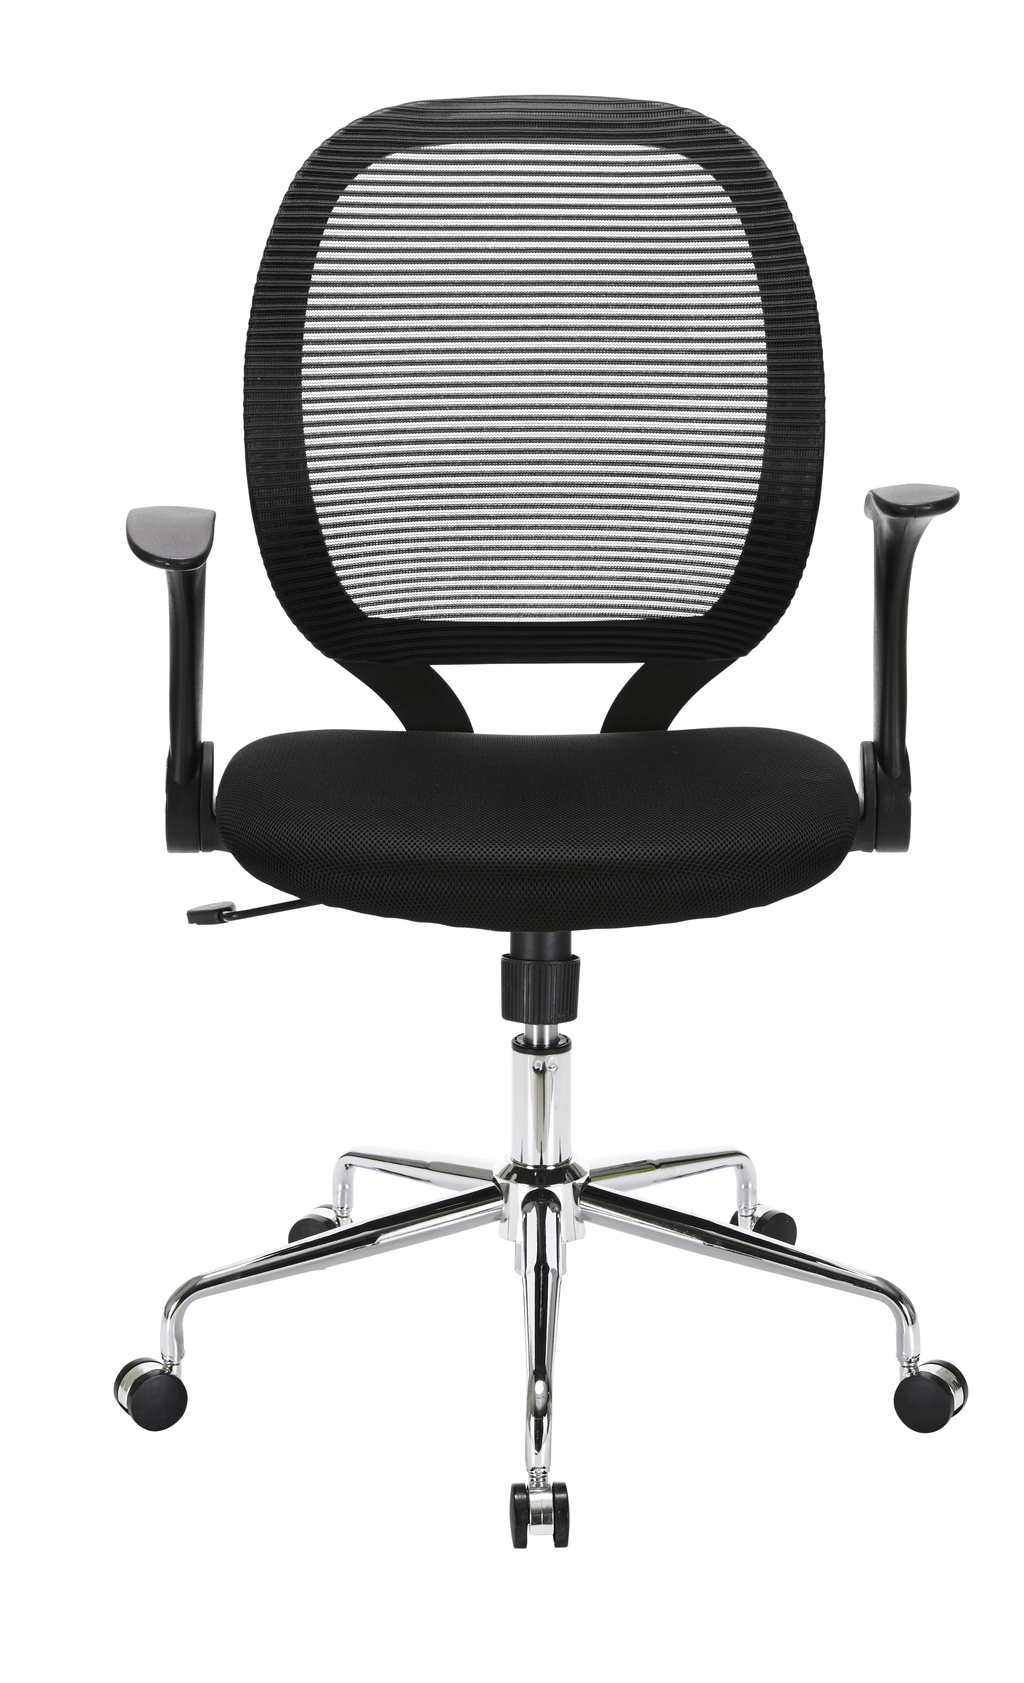 cogra mesh chair black more my style pinterest mesh chair